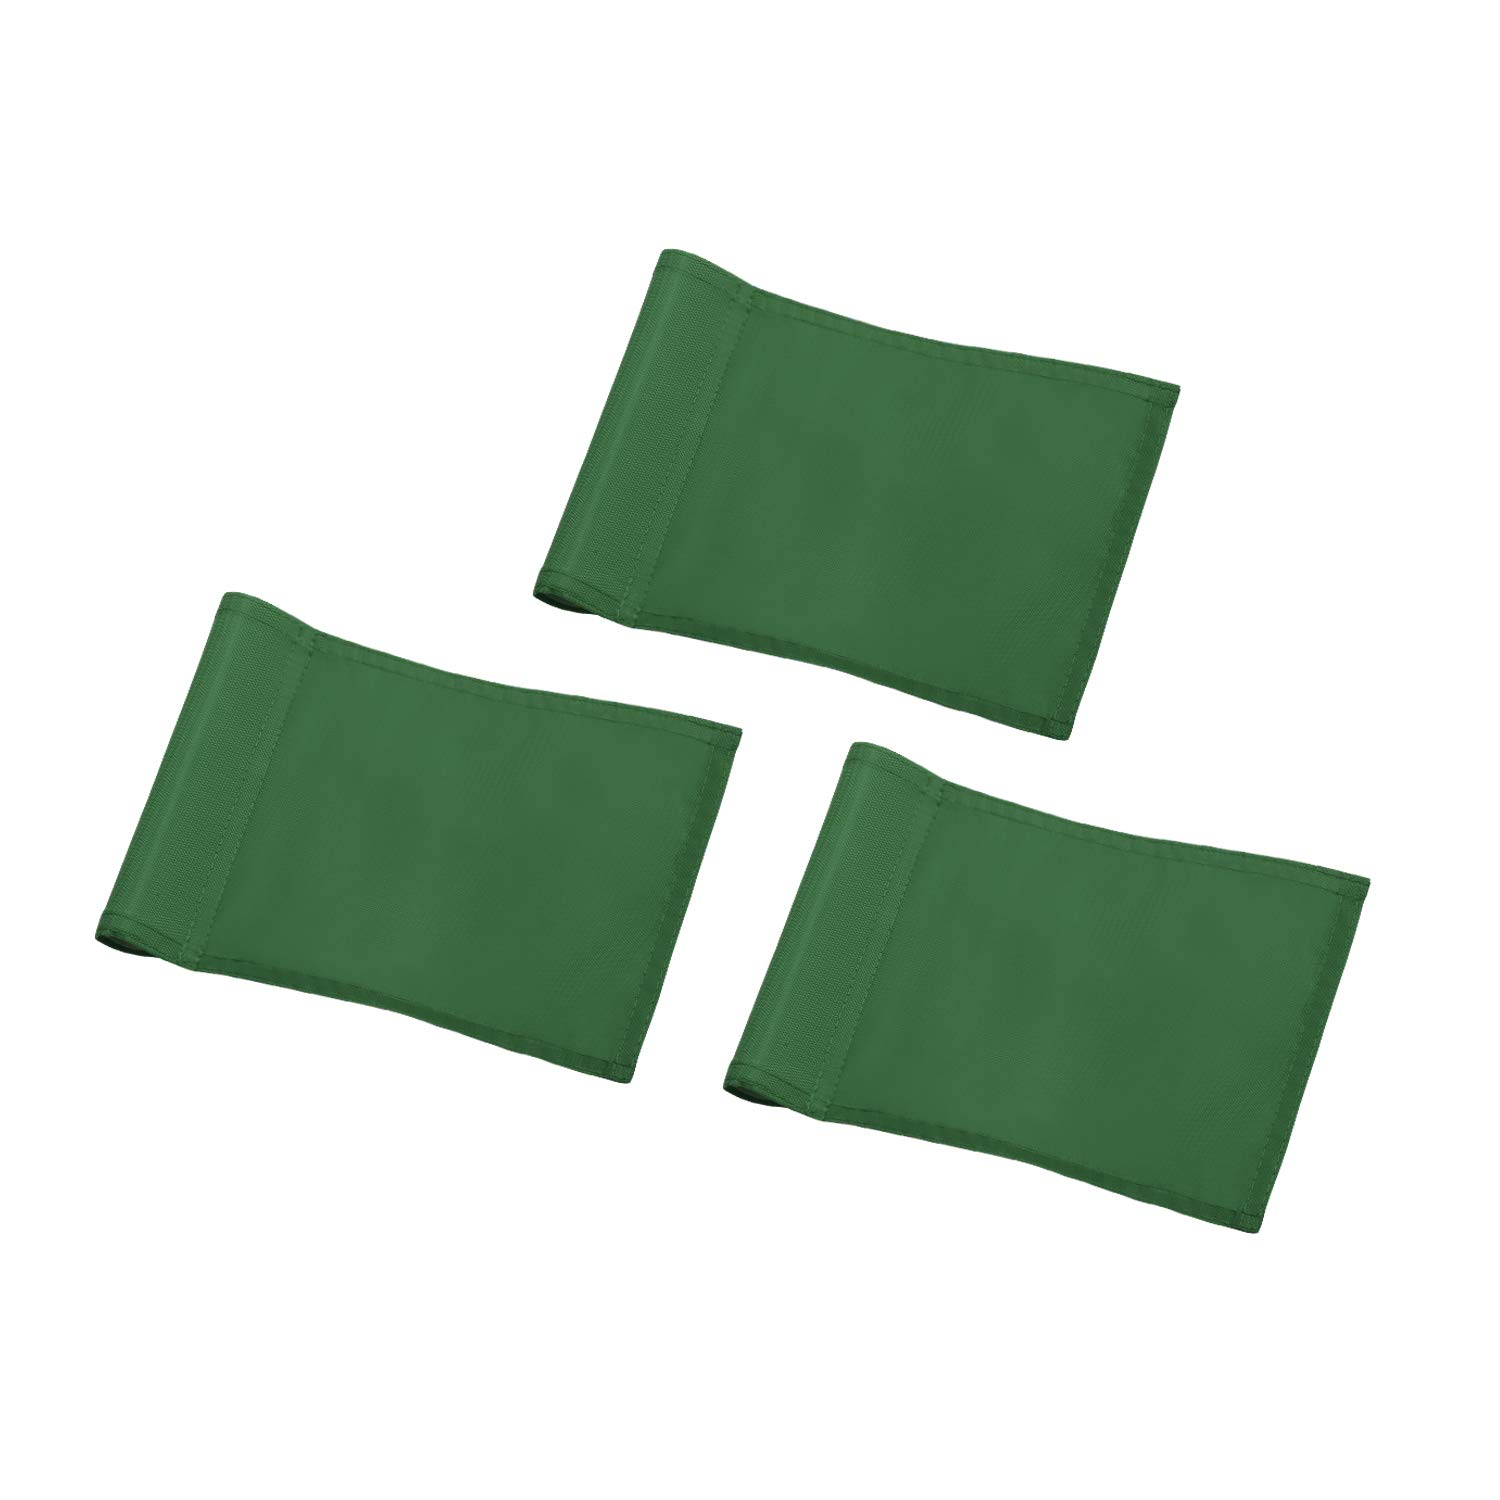 KINGTOP Solid Golf Flag with Plastic Insert, Putting Green Flags for Yard, Indoor/Outdoor, Garden Pin Flags, 420D Premium Nylon Flag, 8'' L x 6'' H, Green, 3-Pack by KINGTOP